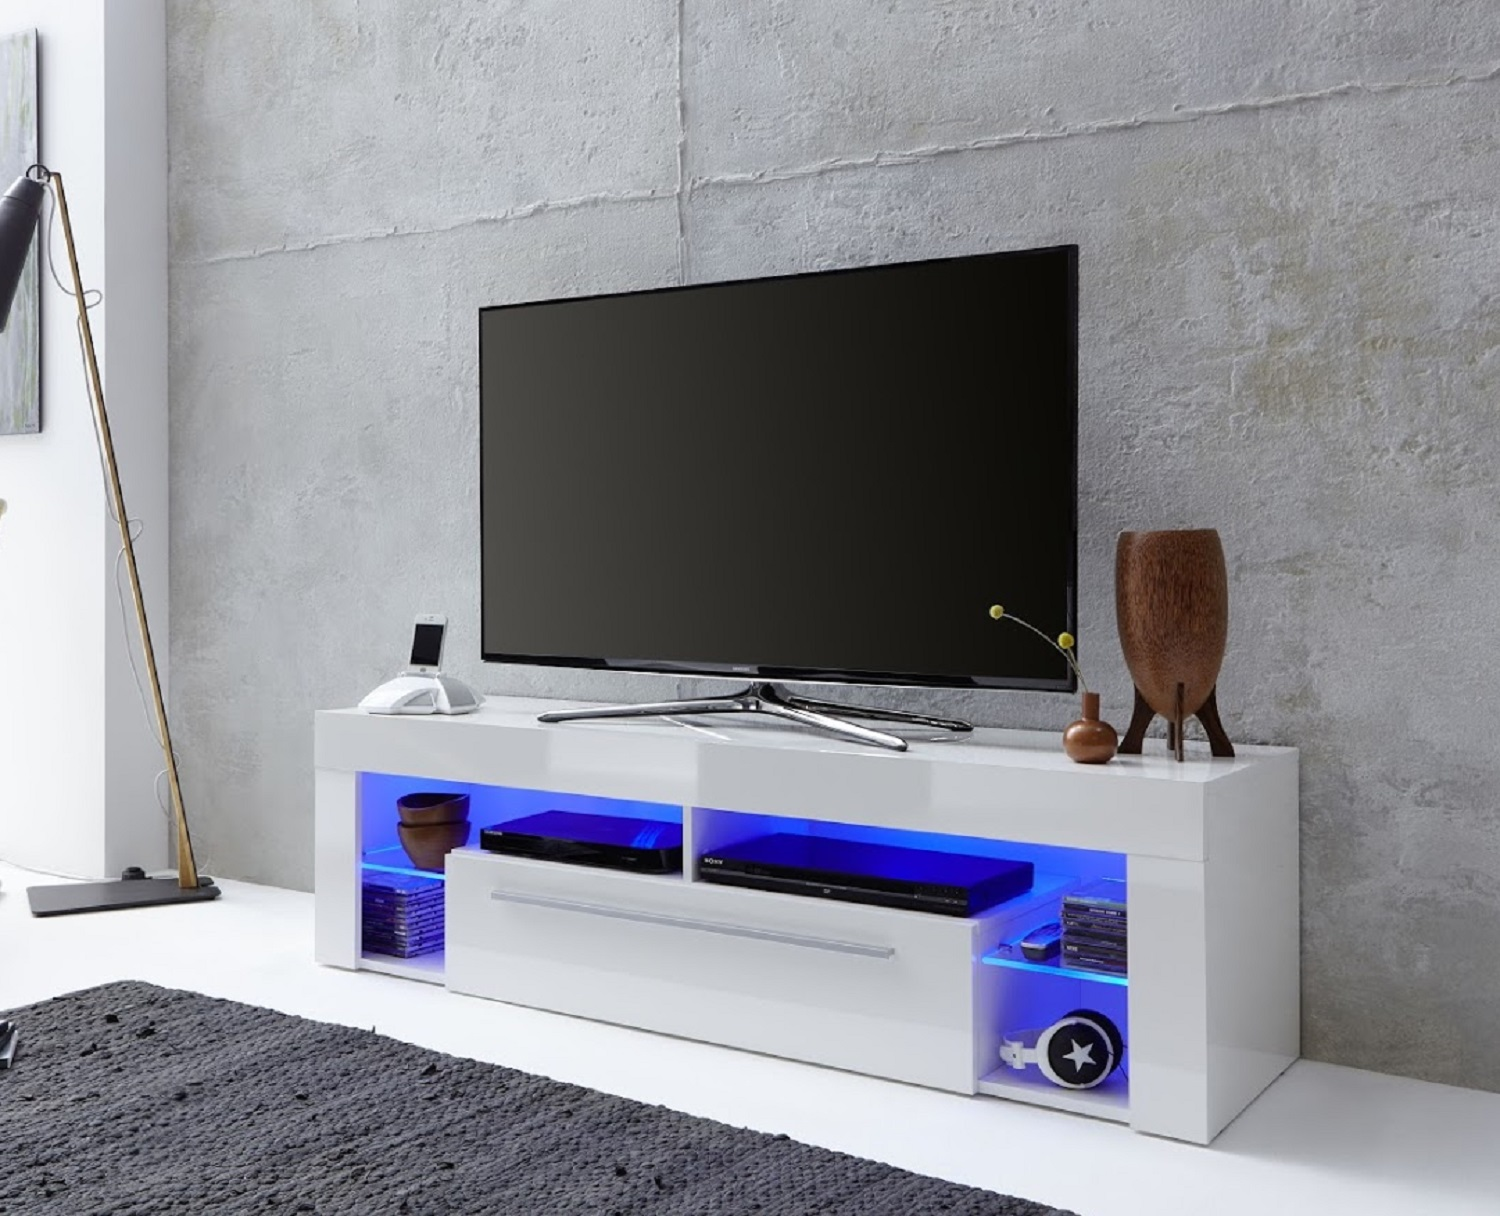 lowboard wei hochglanz tv hifi fernseh rack unterteil led. Black Bedroom Furniture Sets. Home Design Ideas